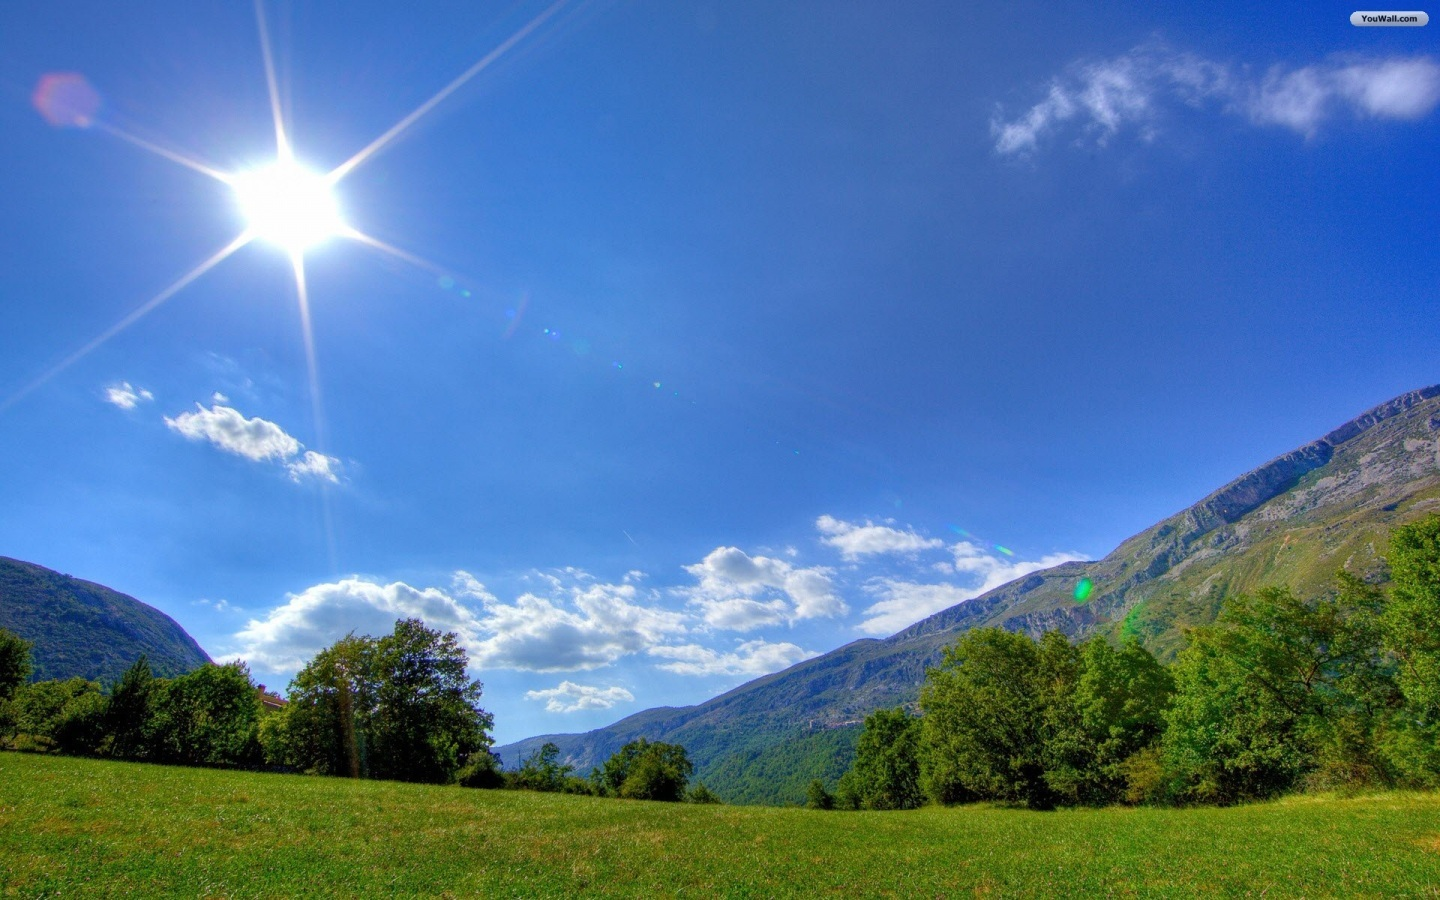 Pretty Sunny Day Wallpaper Hd Wallpapers Photo Shared By Devonne23 1440x900